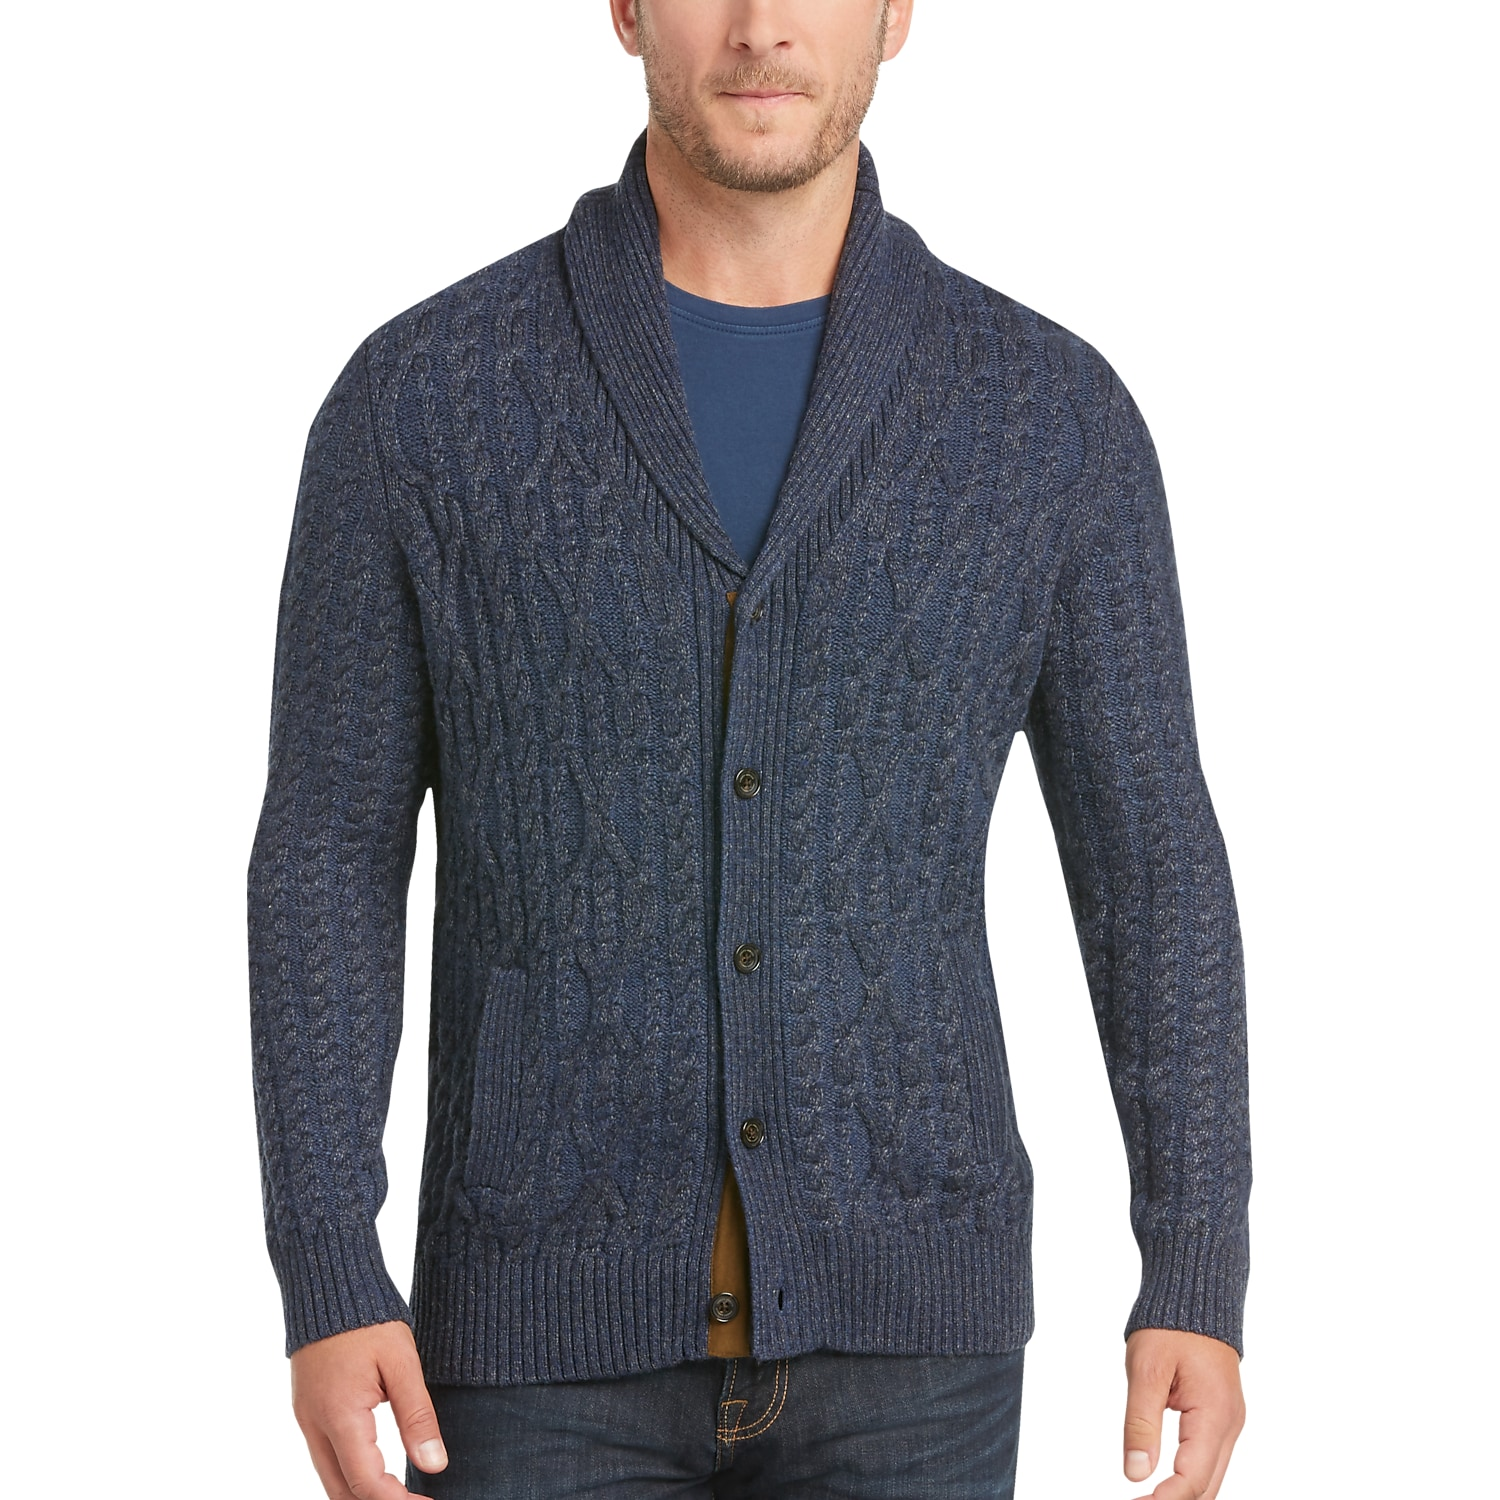 Cardigans, Men's Cardigan Sweaters | Men's Wearhouse